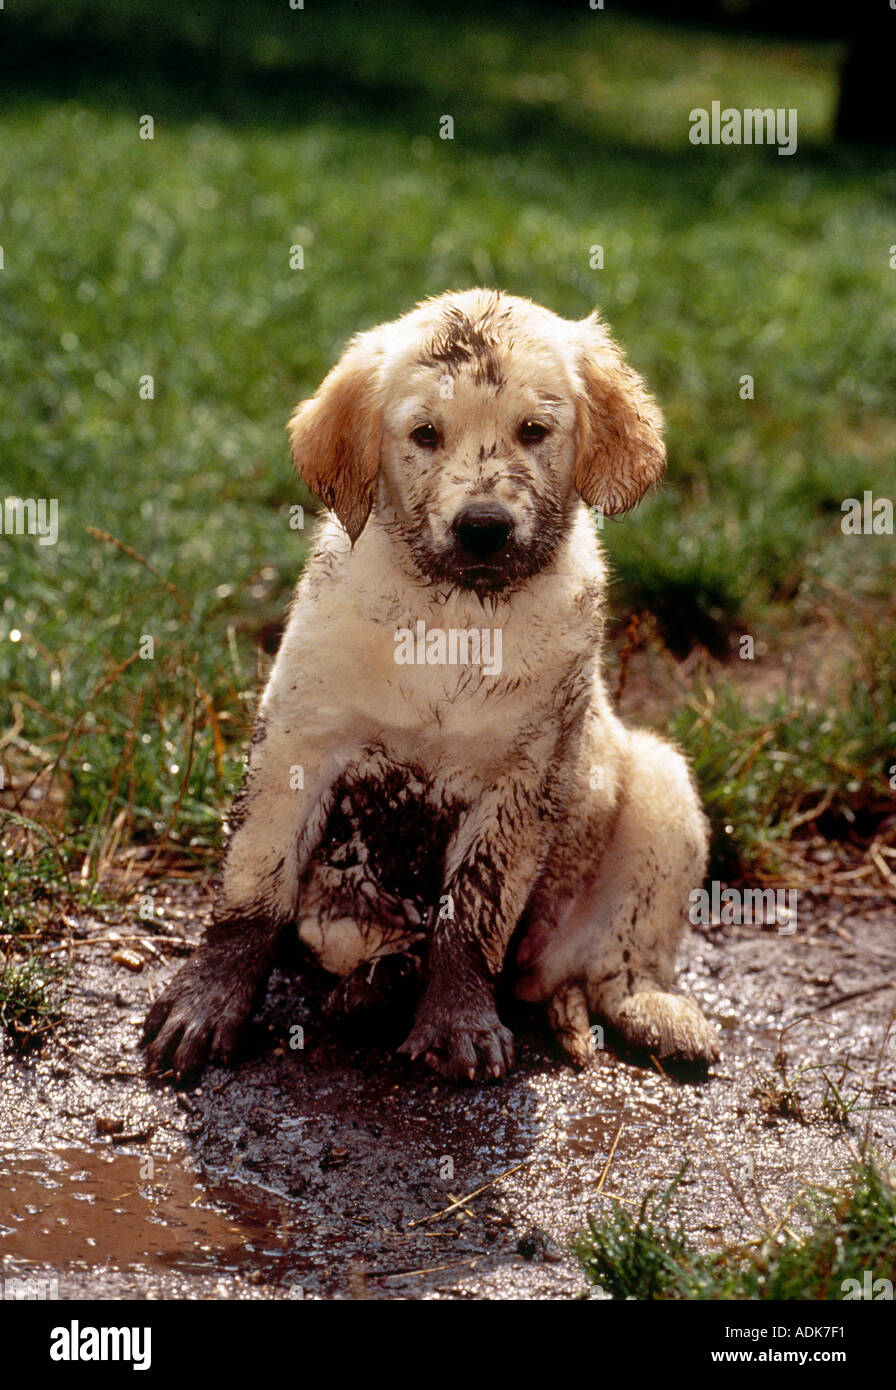 Golden Retriever Dog Puppy In Mud Stock Photo, Royalty Free Image ...